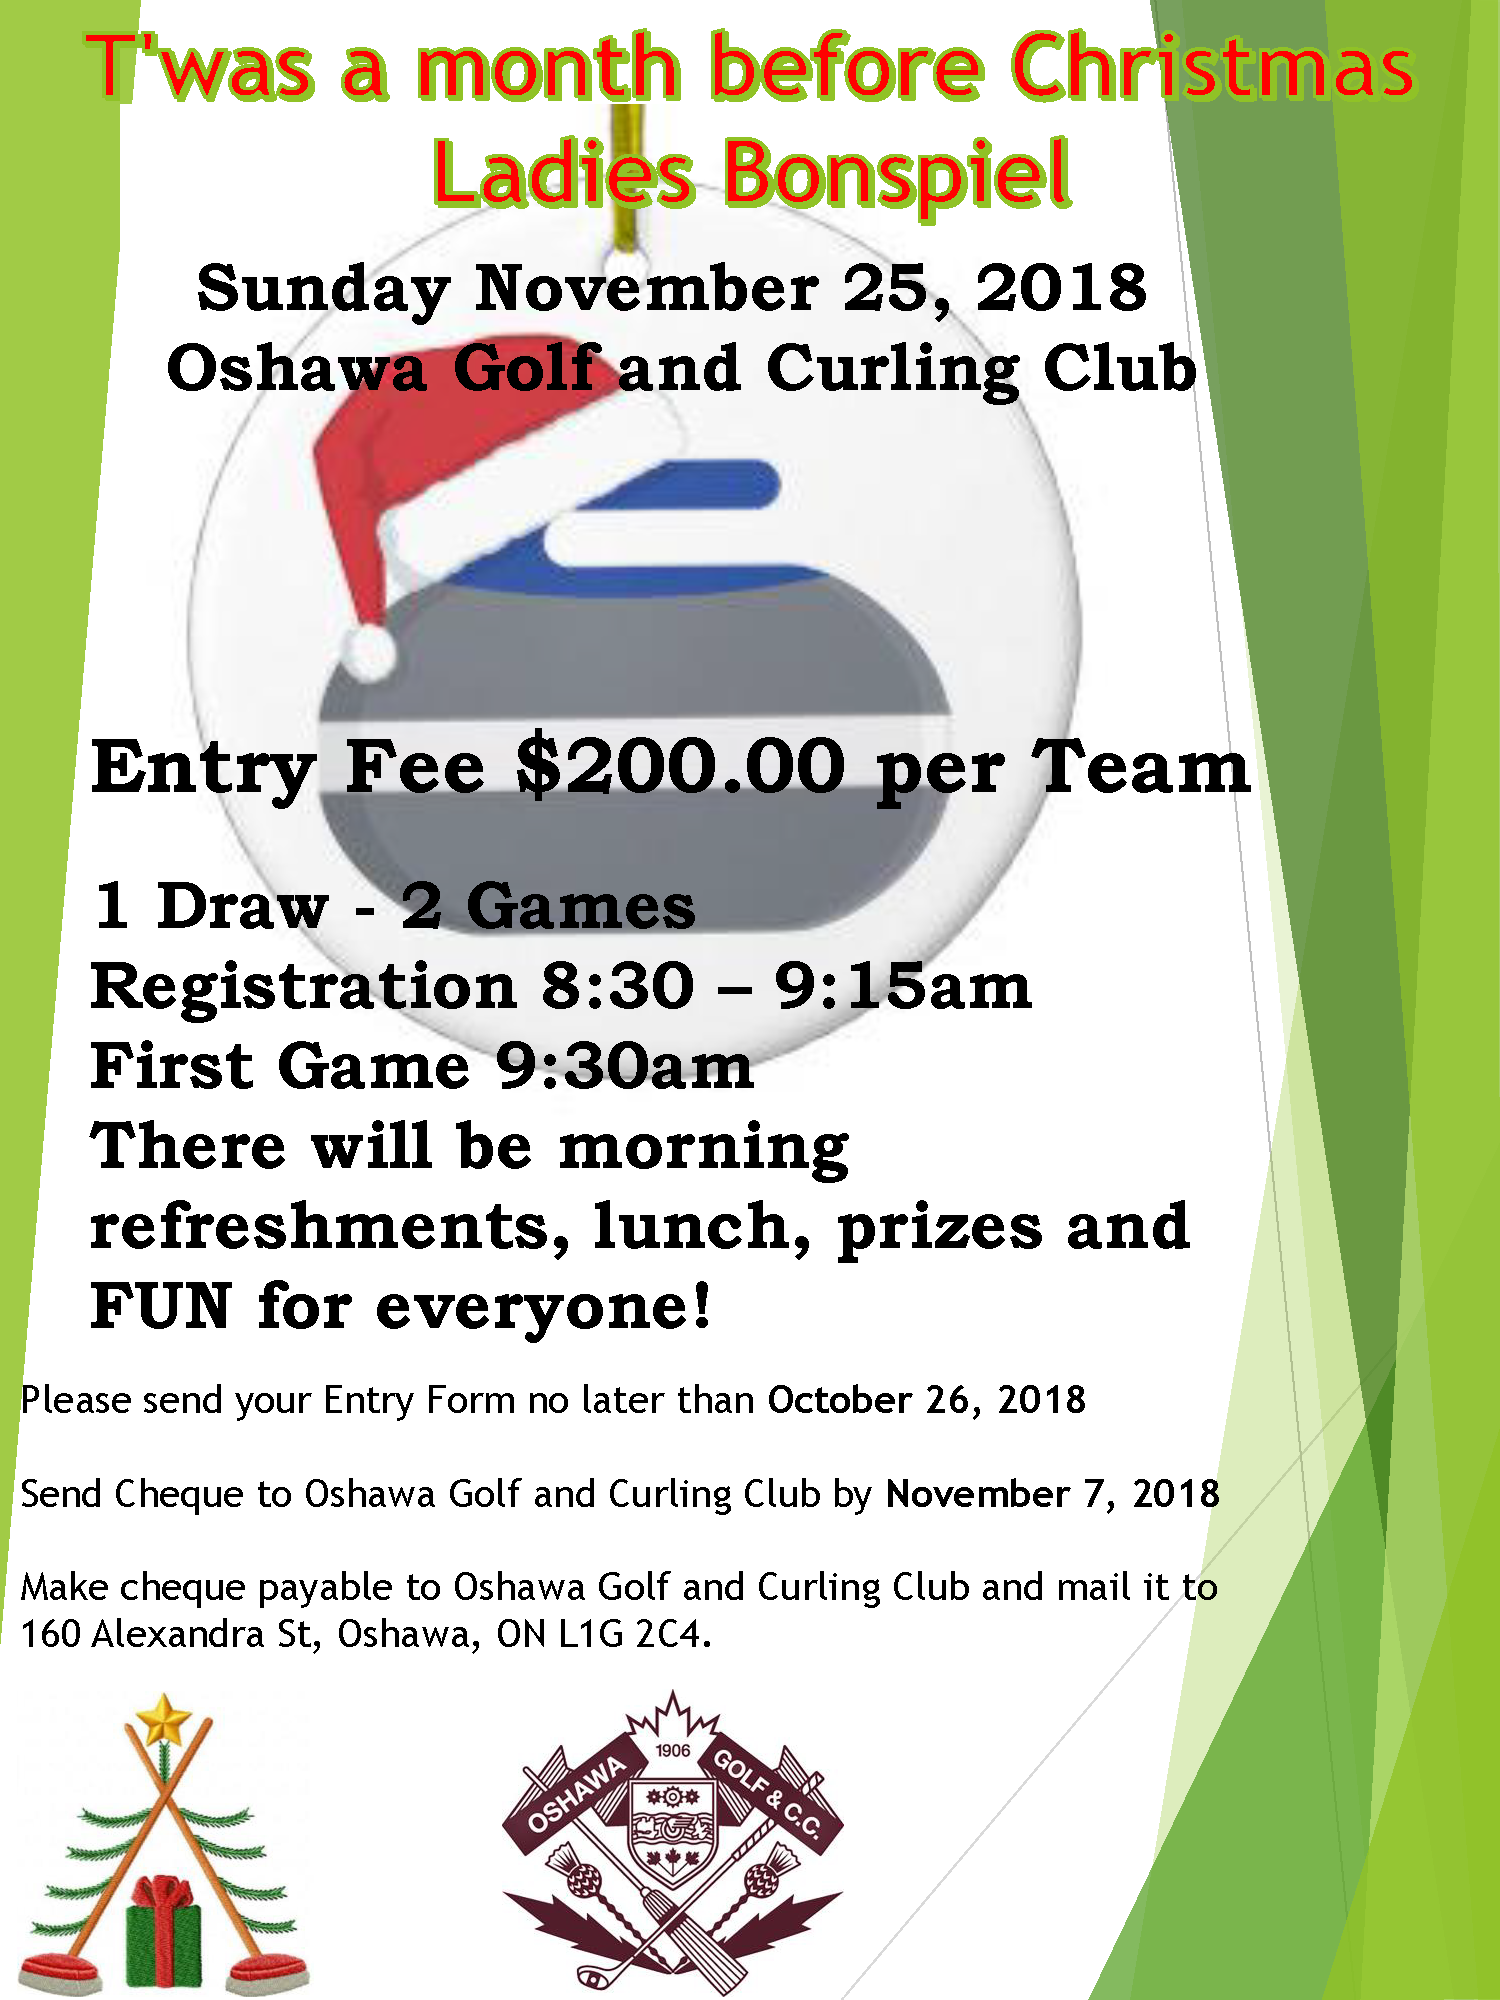 Ladies Bonspiel Nov 25 2018_Page_1